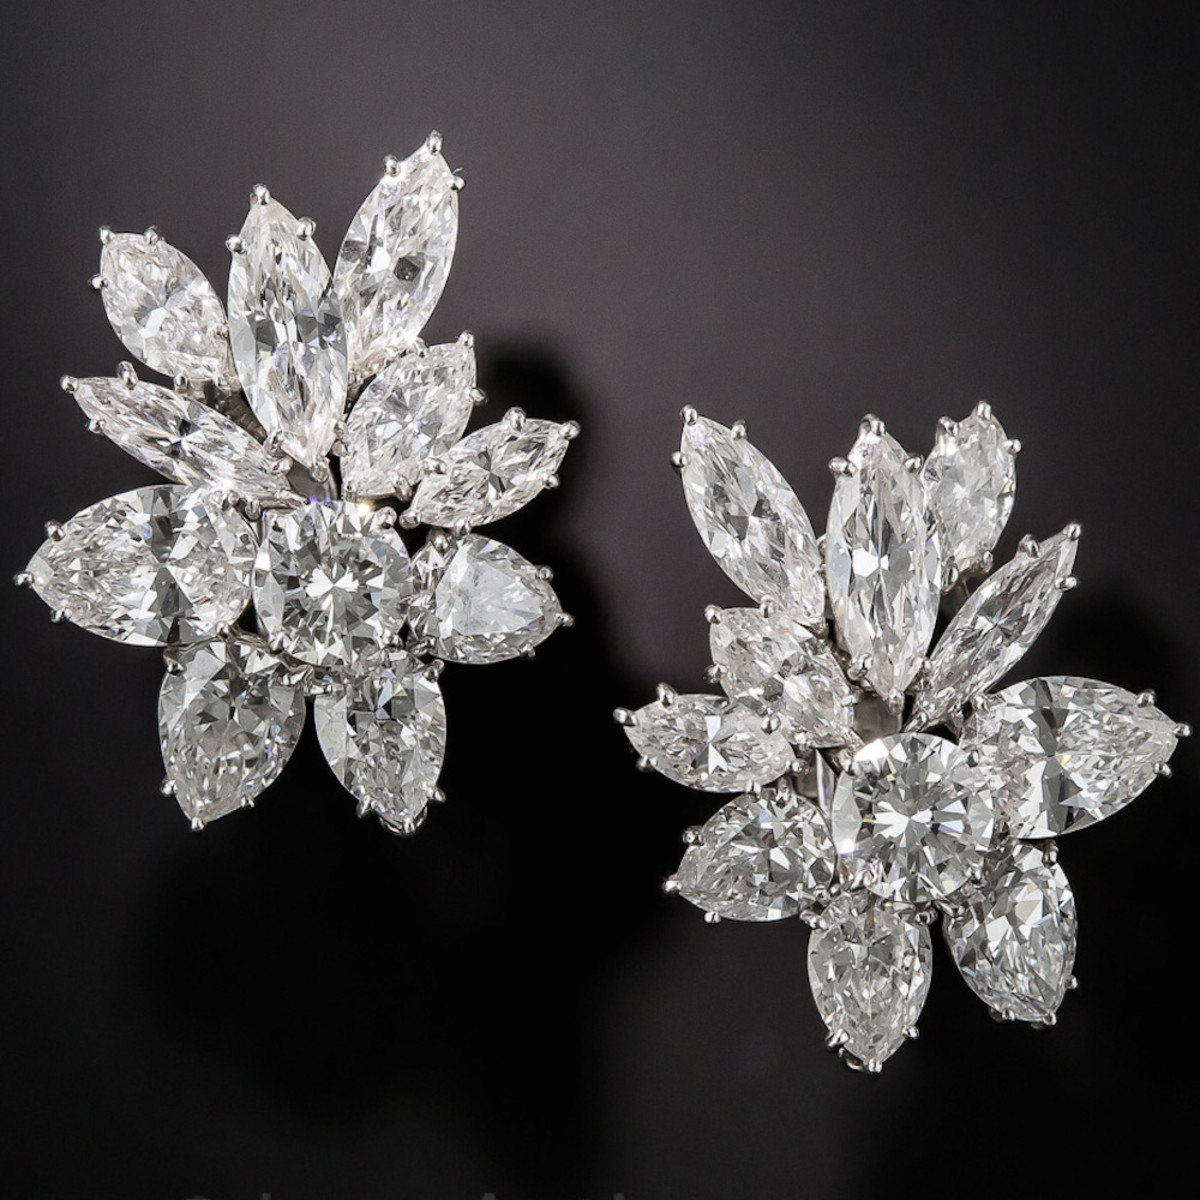 Harry Winston 16 Carat Diamond Earrings